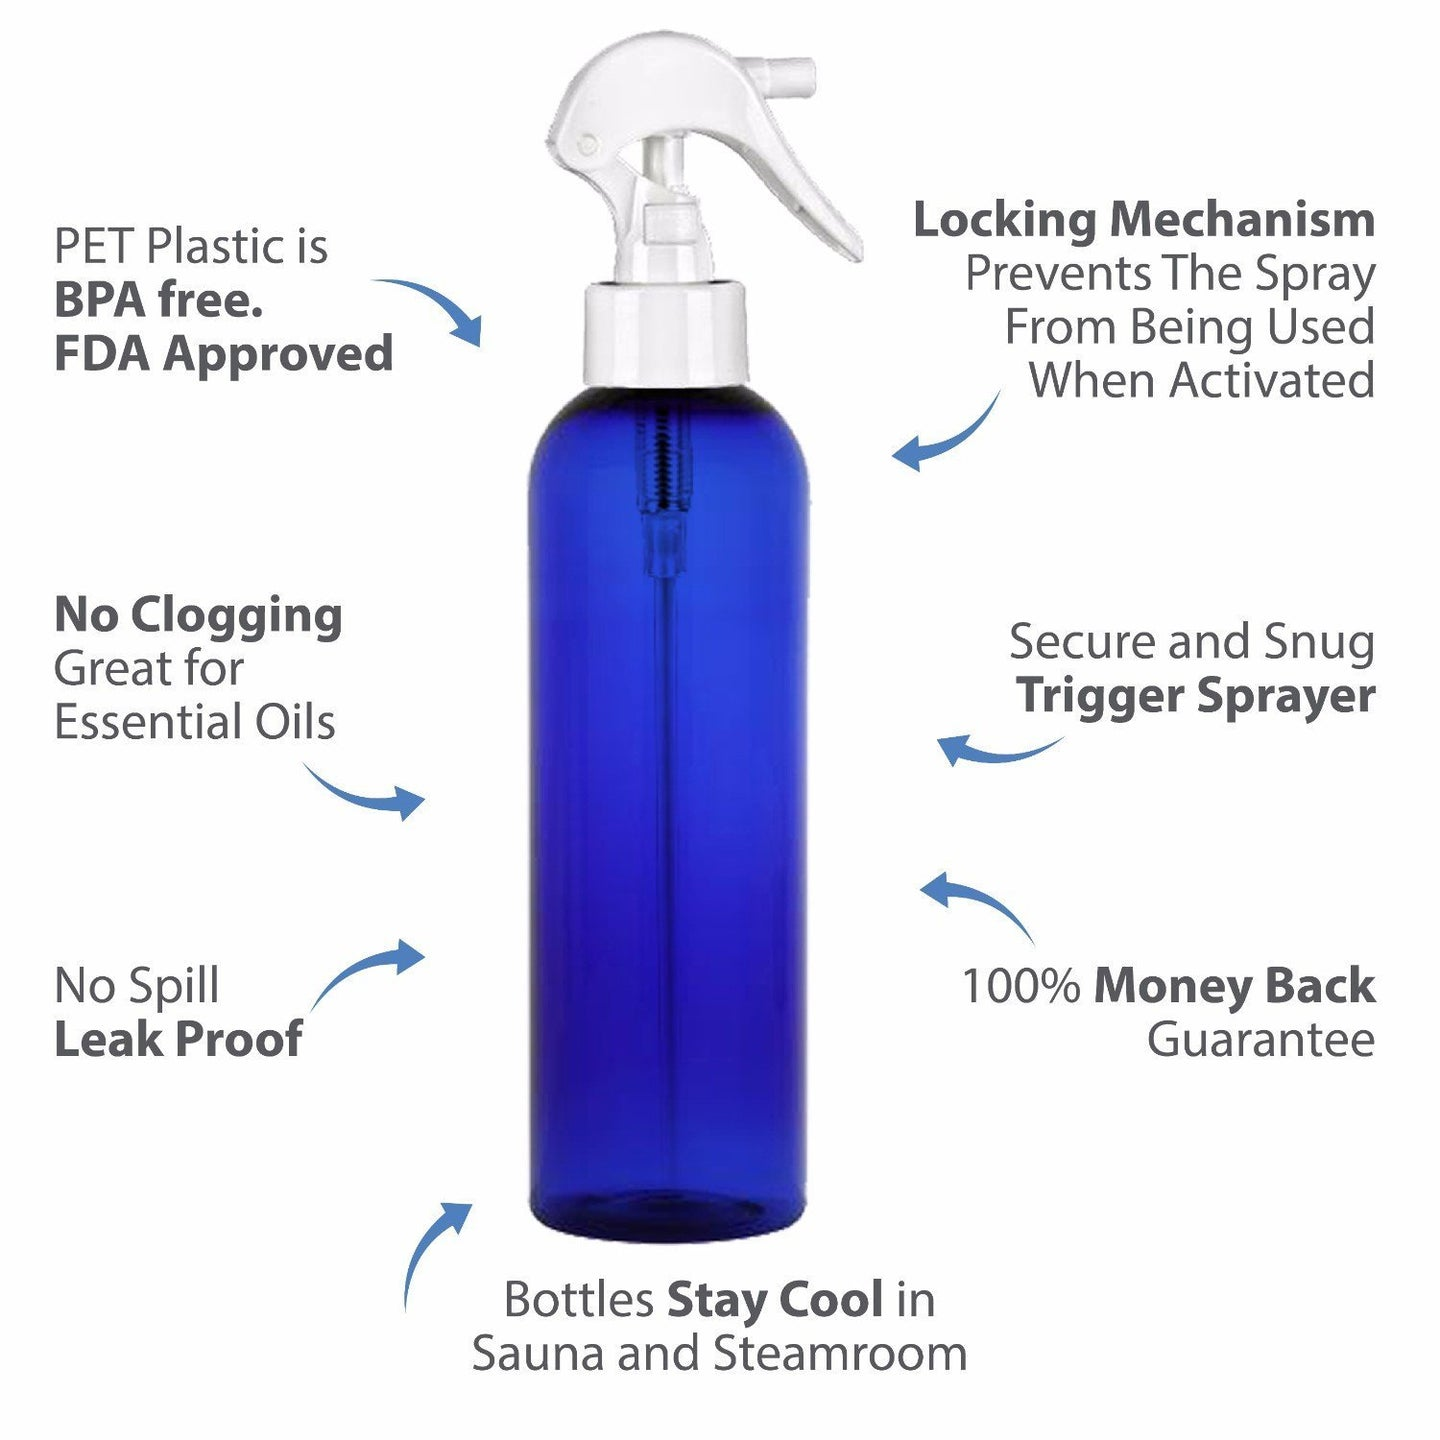 MoYo Natural Labs 8 oz Spray Bottles, Trigger Sprayer Empty Travel Containers, BPA Free for Essential Oils and Liquids/Cosmetics (Pack of 12, Blue)